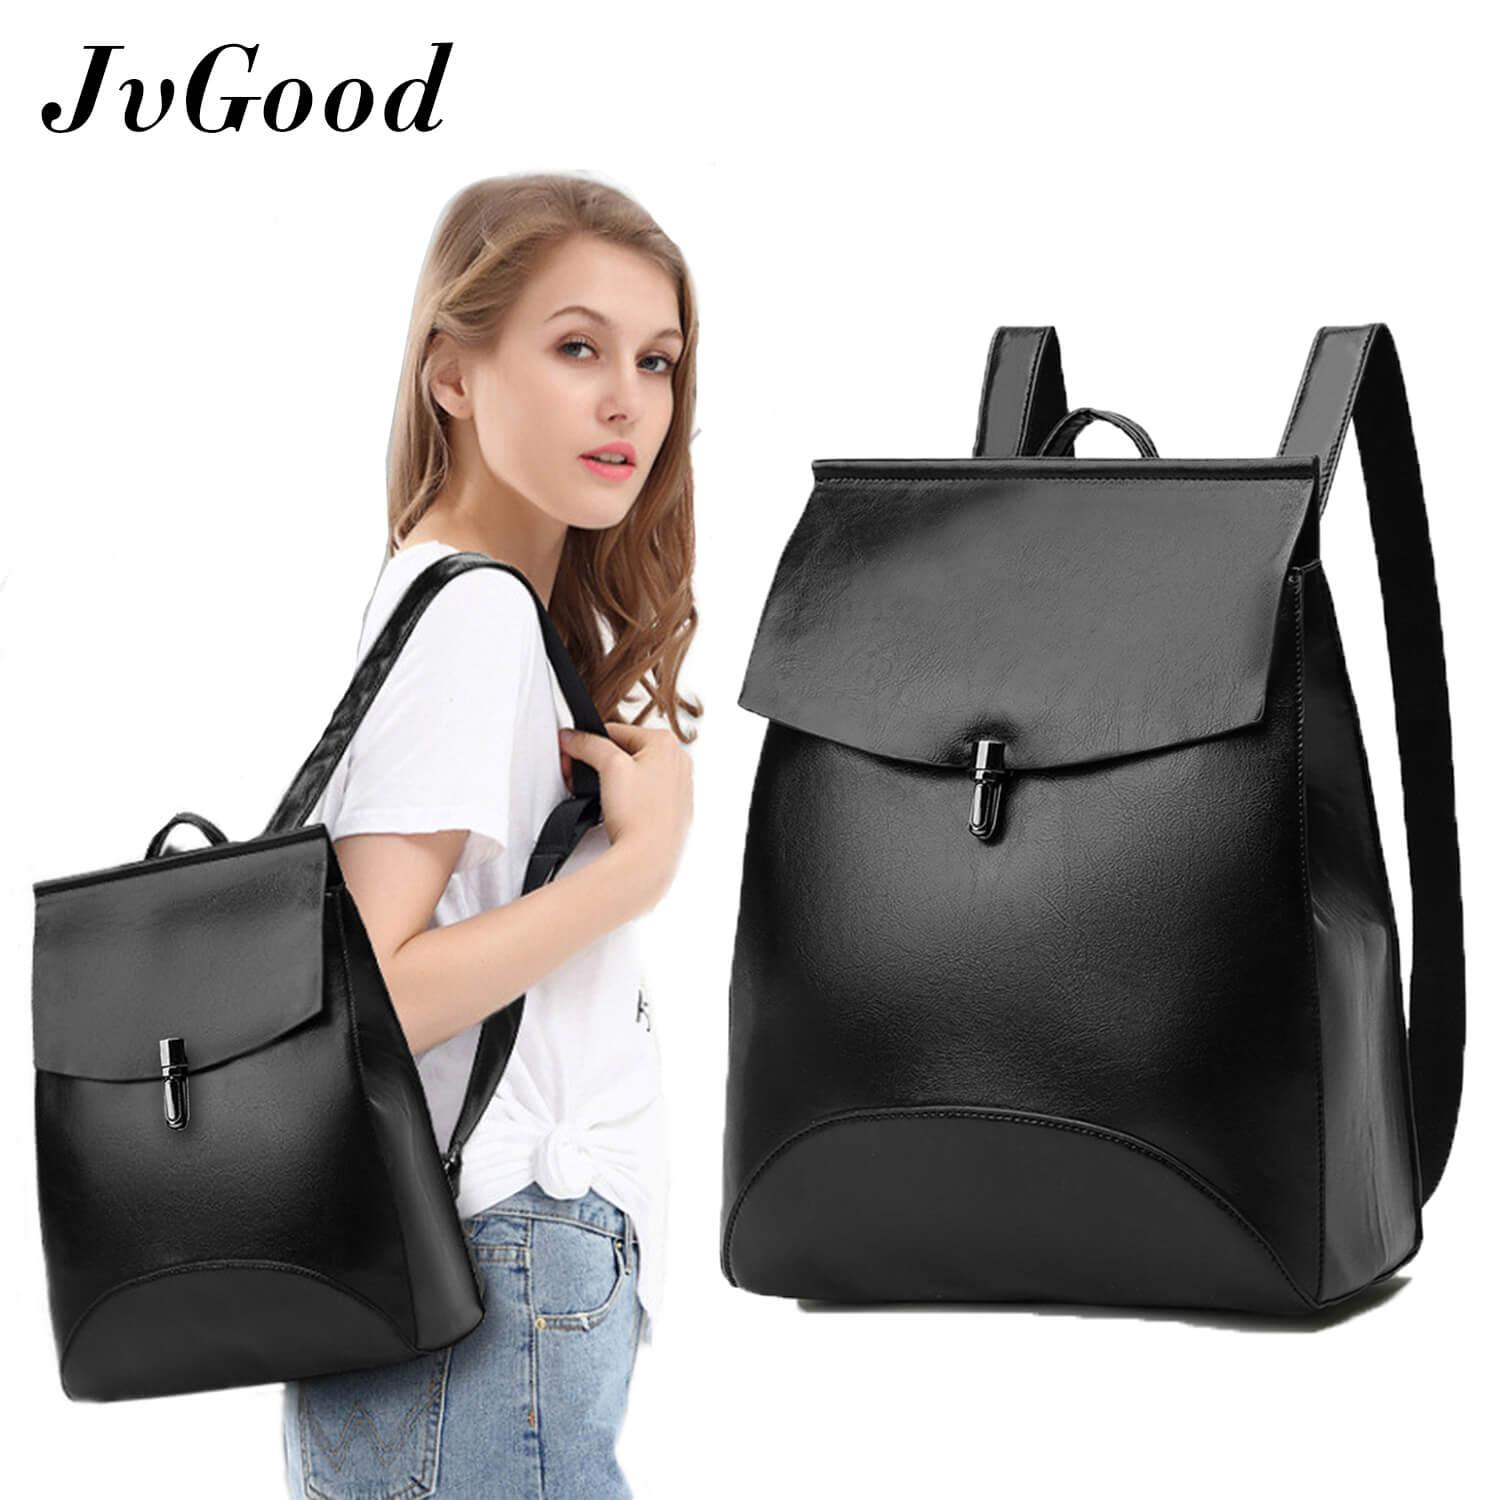 Jvgood Women S Pu Leather Backpack Purse Ladies Casual Shoulder Bag Sch**L Bag For Girls Sale